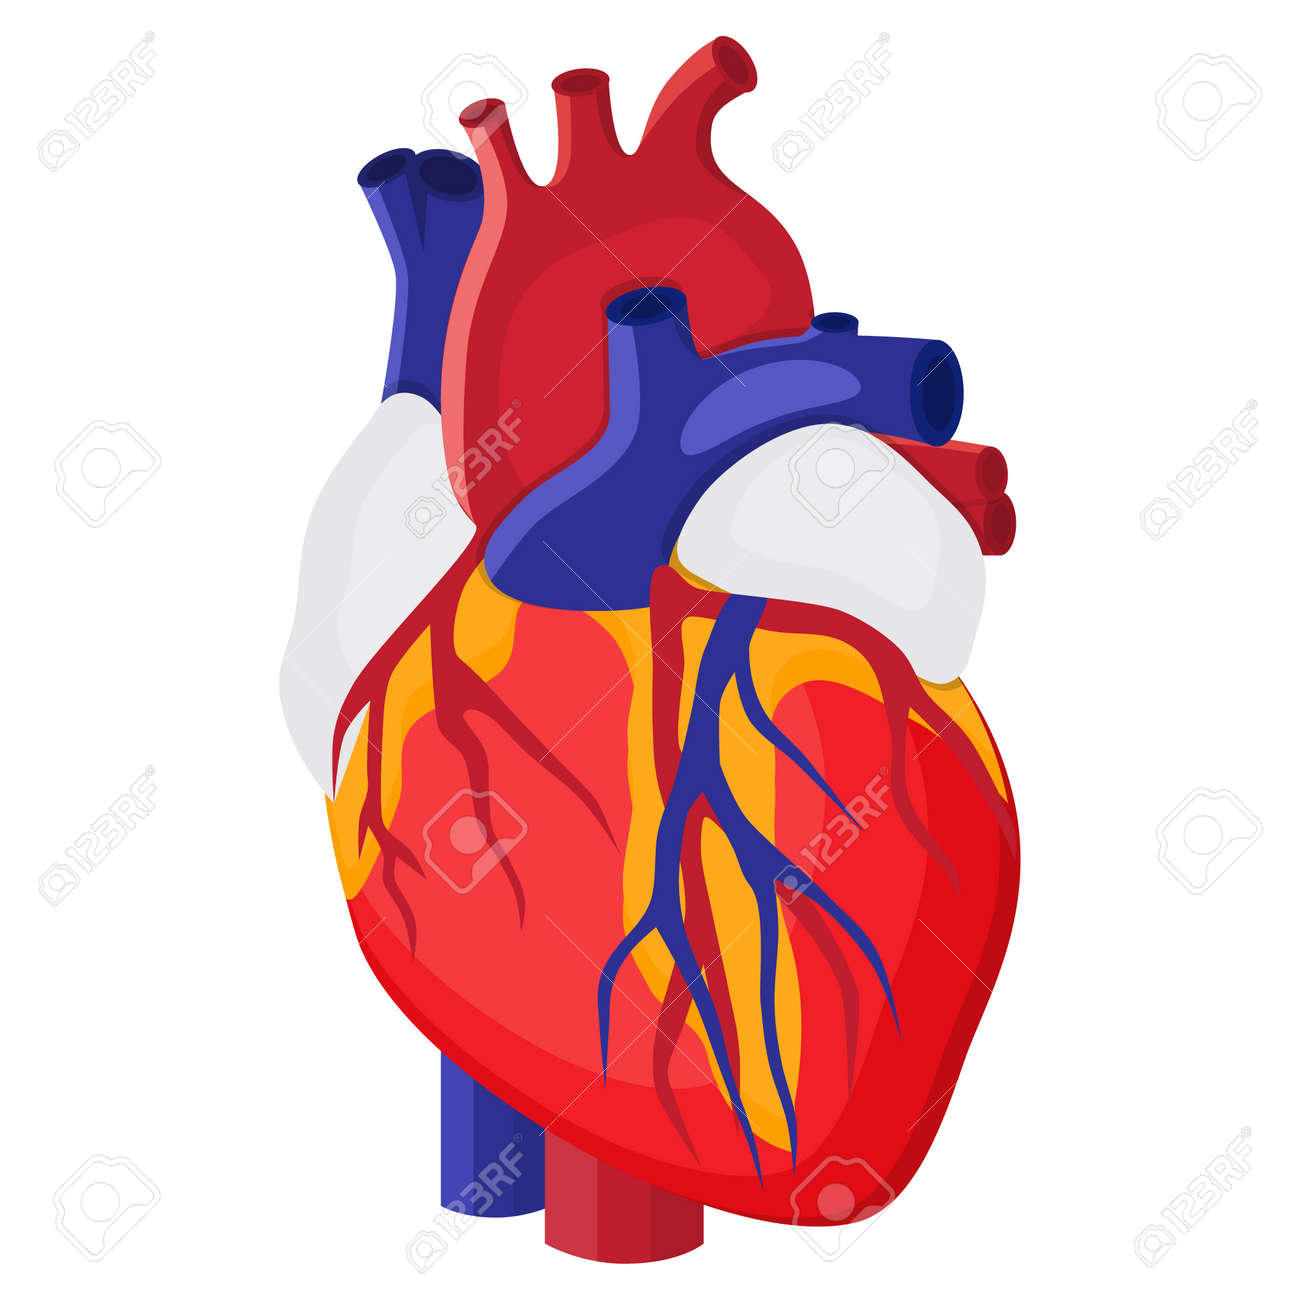 Human heart internal organ vector illustration in flat style human heart internal organ vector illustration in flat style stock vector 79656396 ccuart Gallery